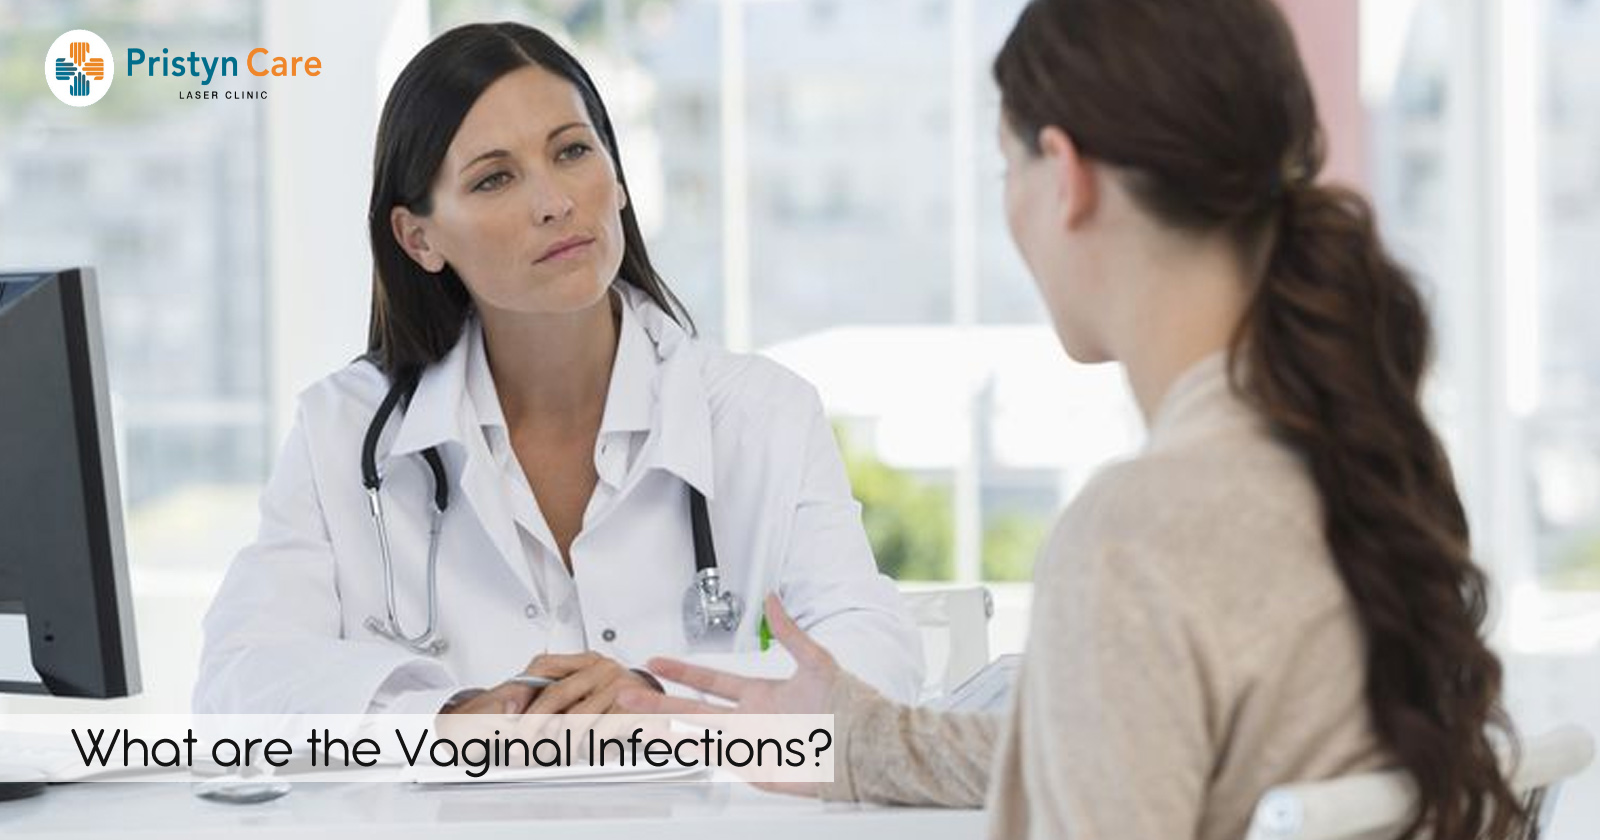 What are the Vaginal Infections?